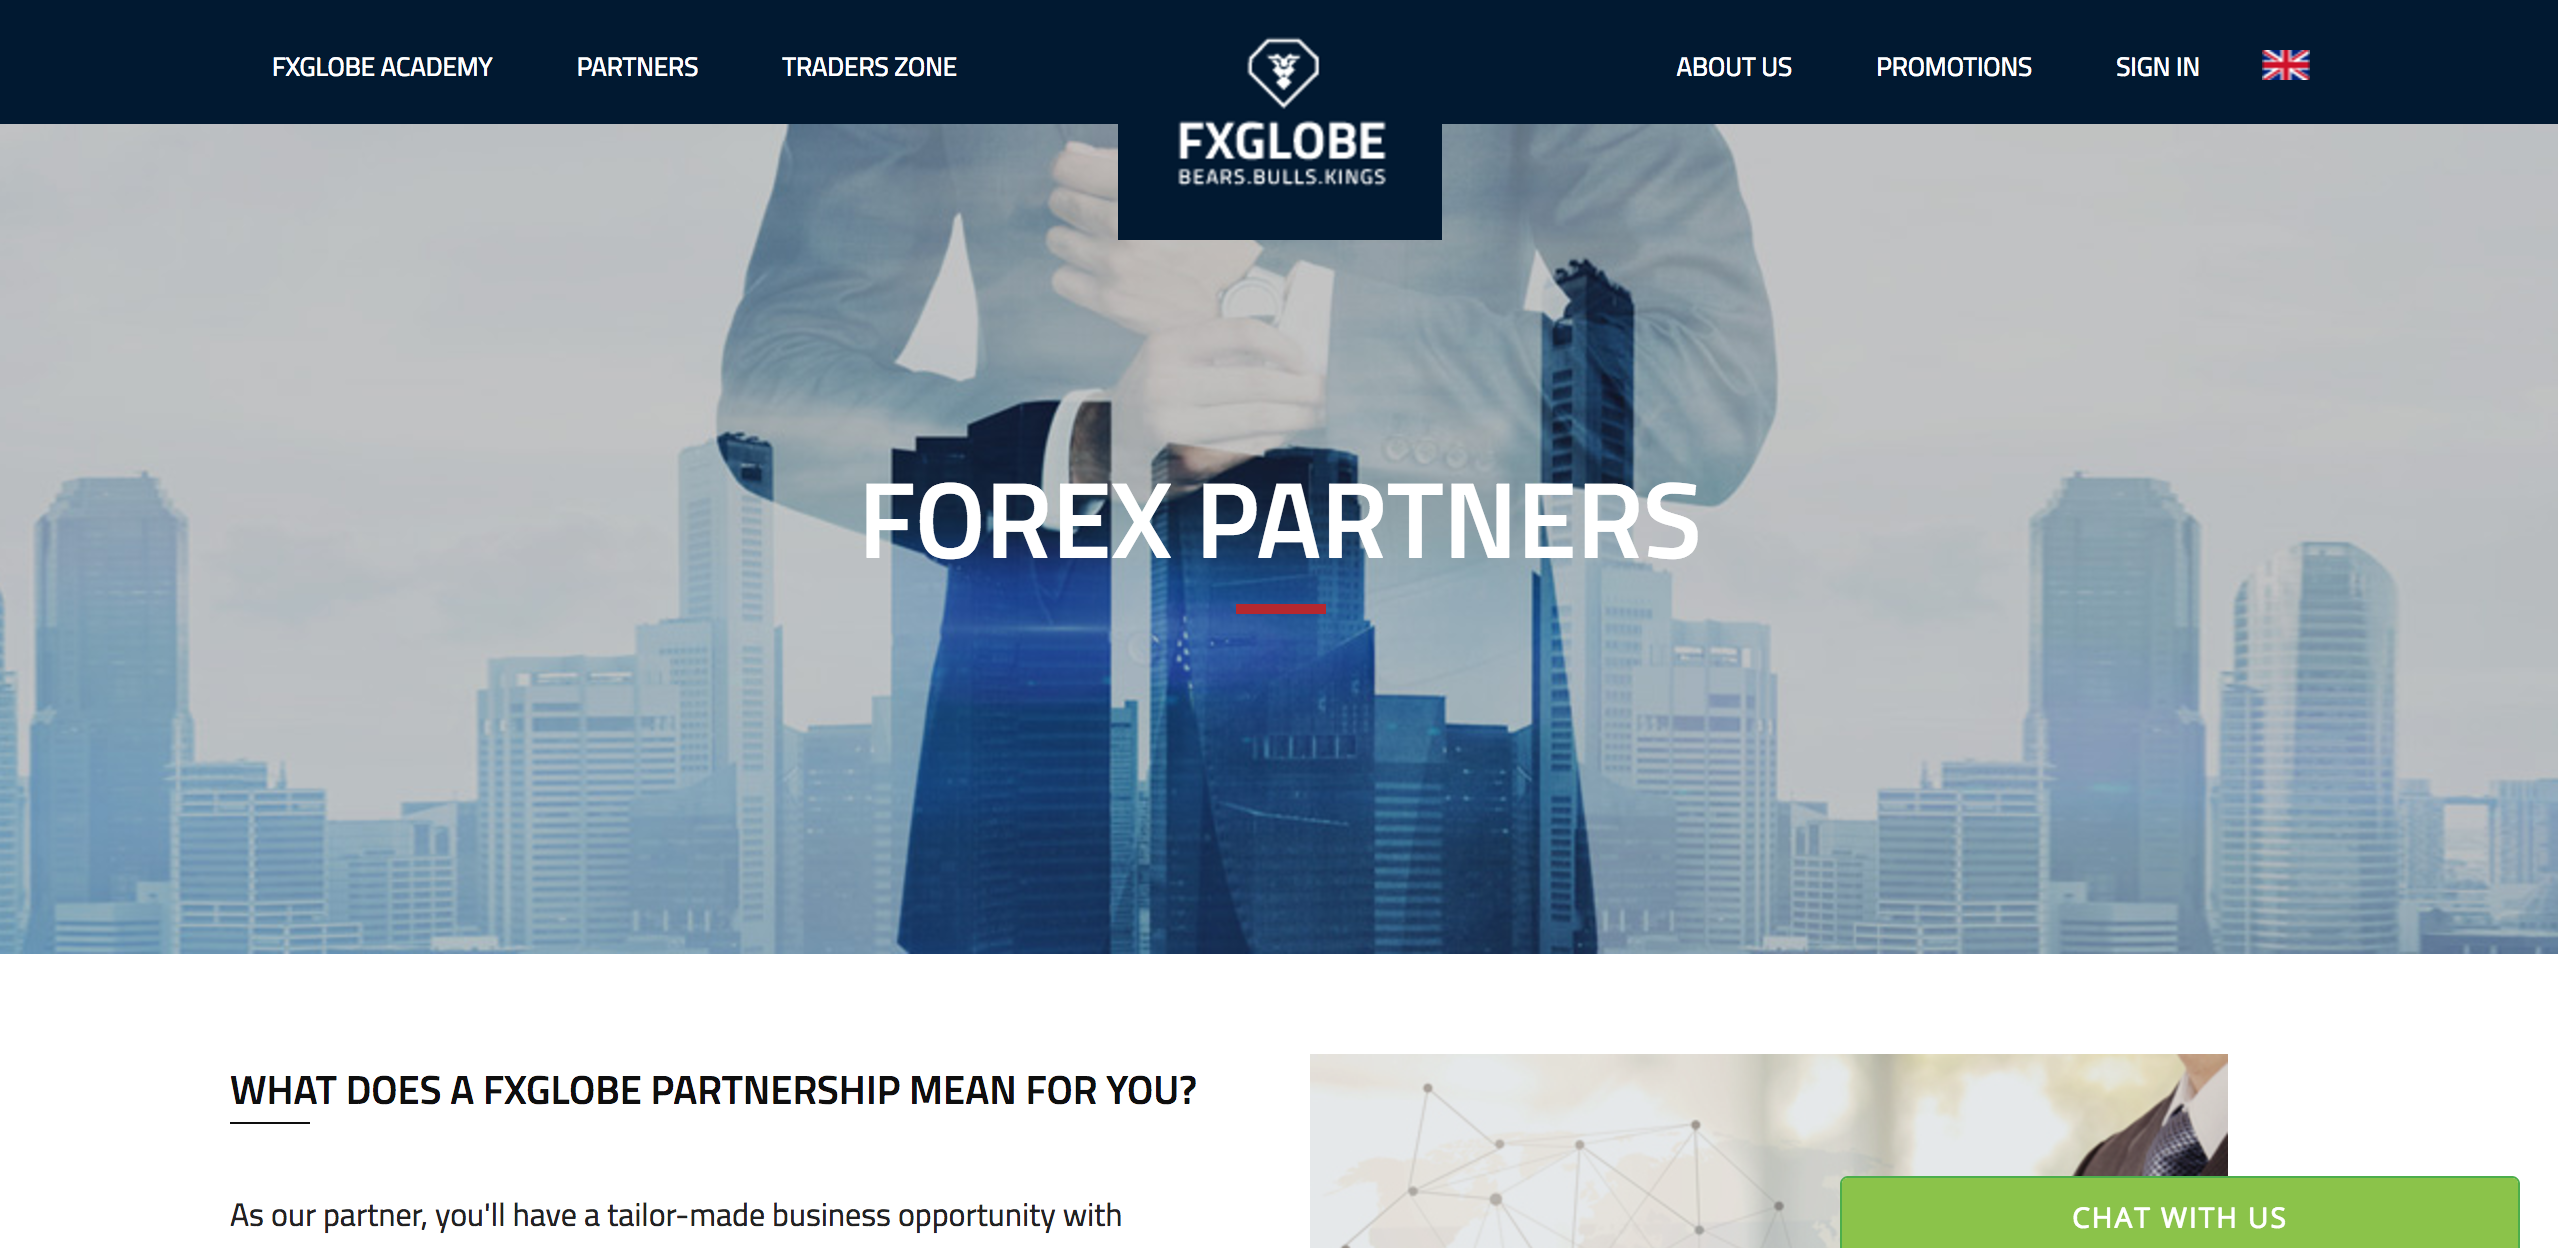 Forex partnership programs